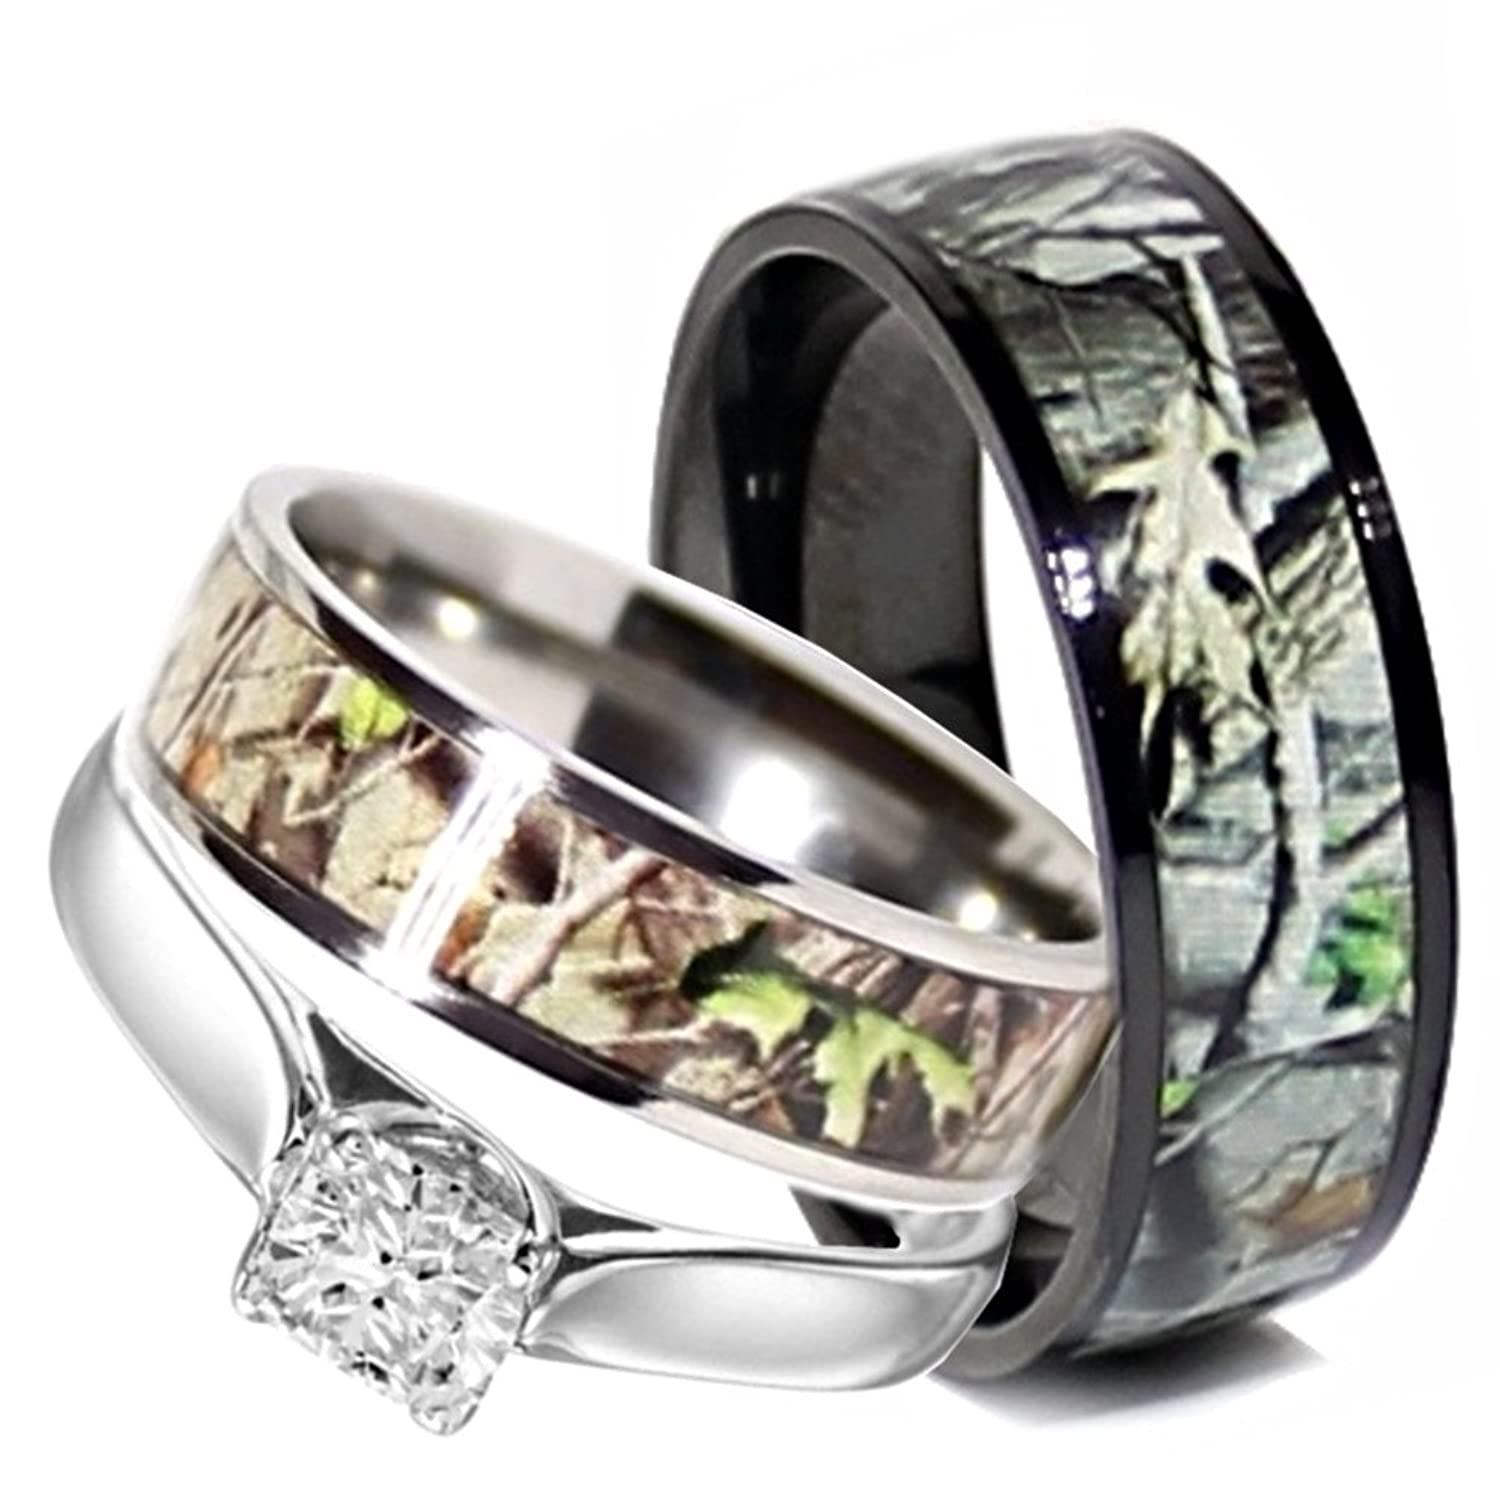 amazoncom camo wedding rings set his and hers 3 rings set sterling silver and titanium size men 10 women 10 jewelry - Camo Wedding Ring Sets